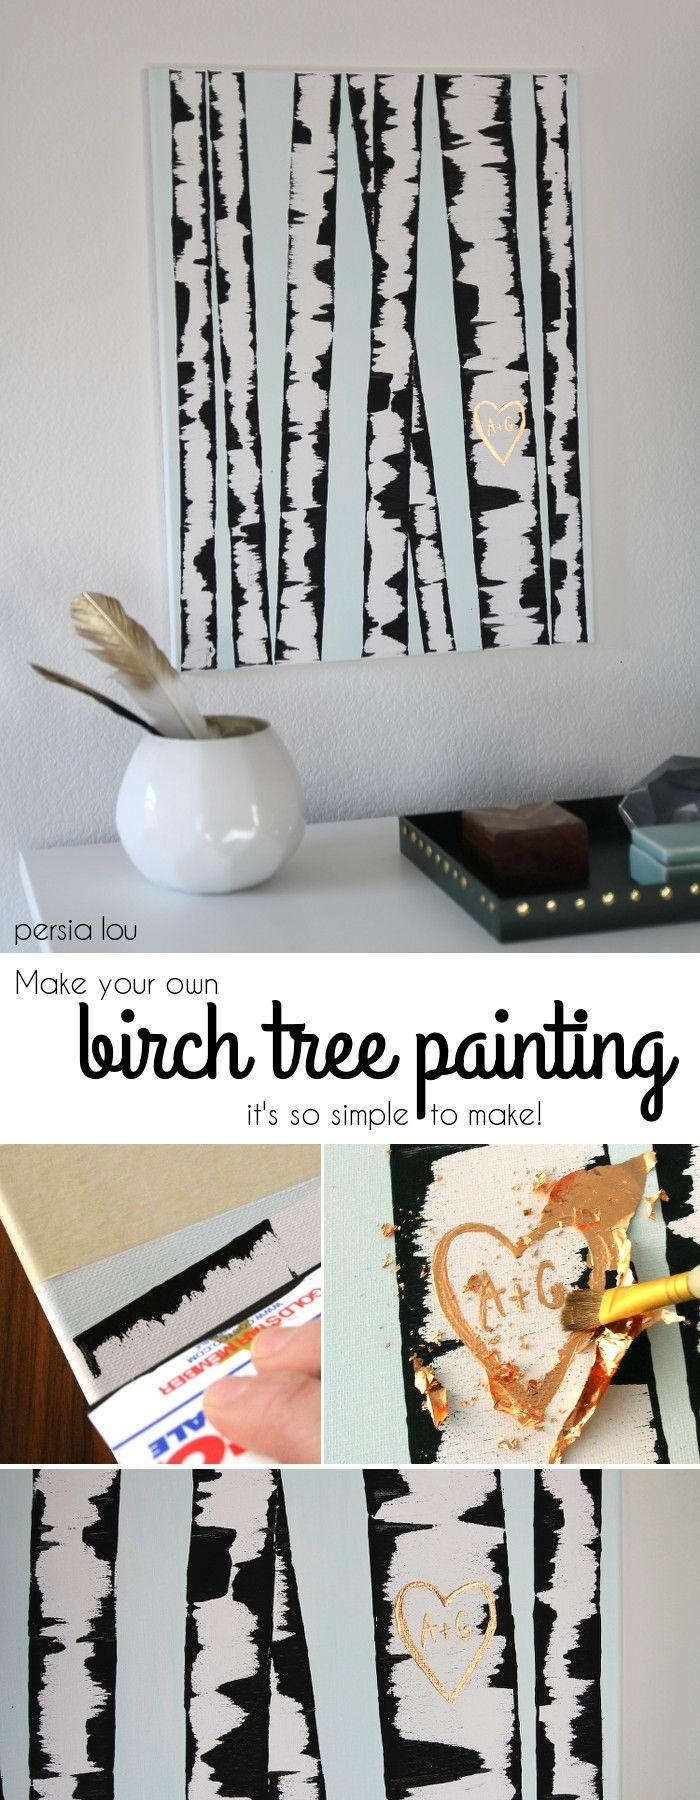 Best 25+ Cheap Wall Art Ideas On Pinterest | Diy Wall Decor For Pertaining To Cheap Wall Art And Decor (Image 6 of 20)